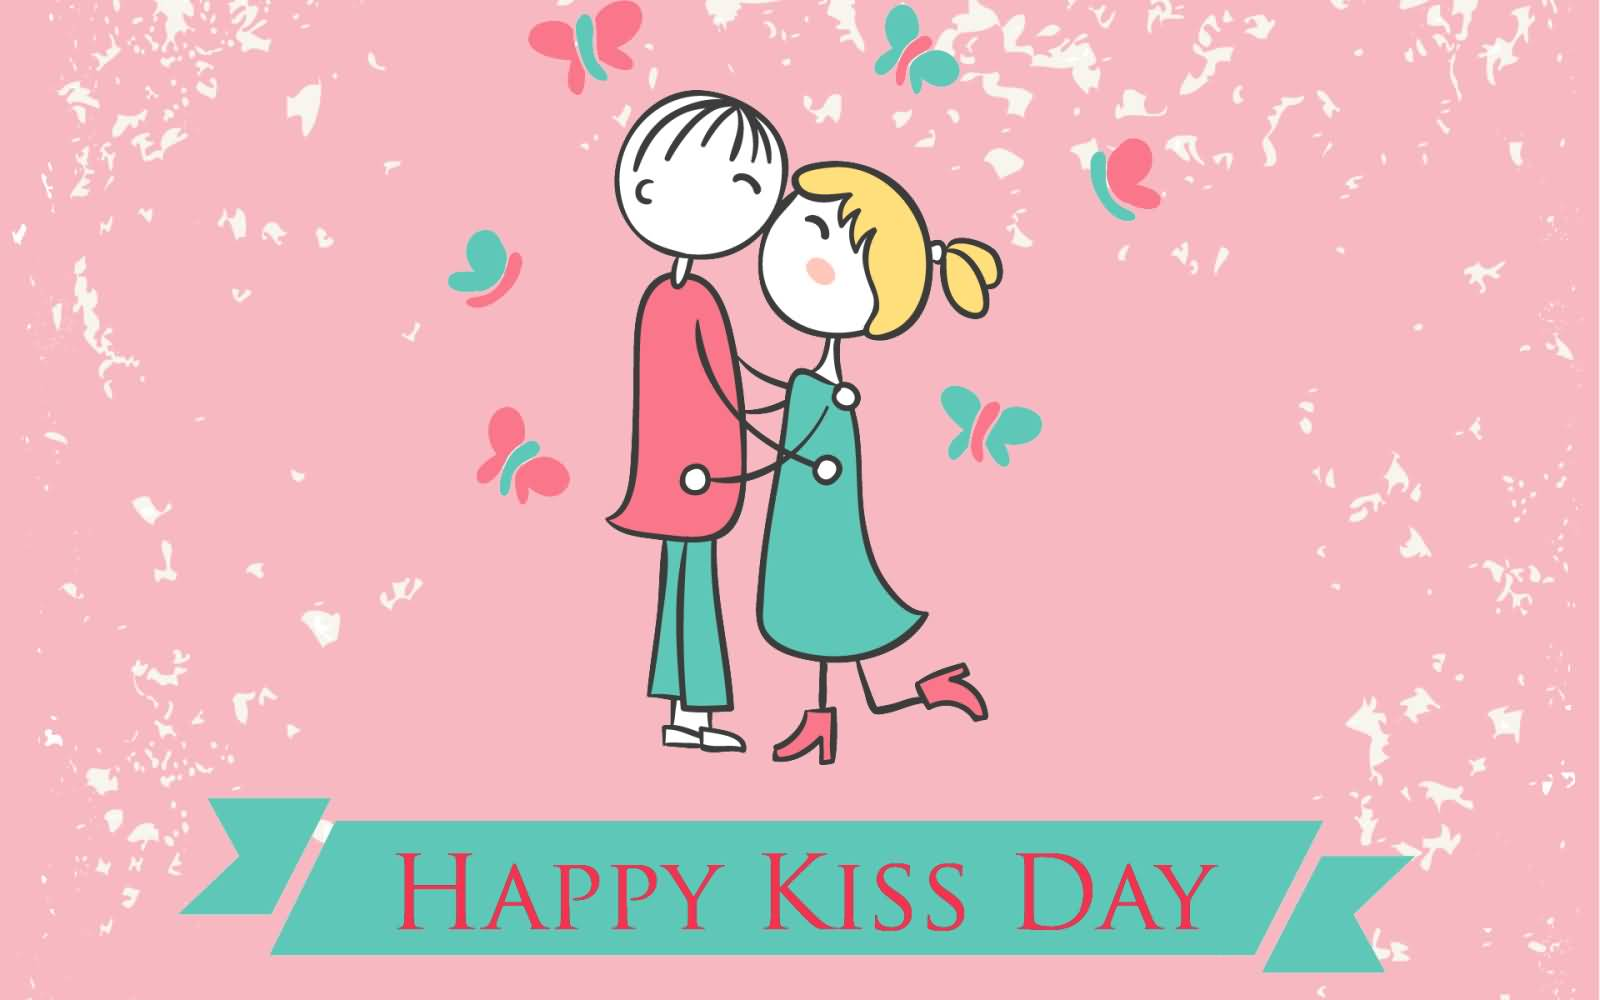 66+ Best Kiss Day 2017 Greeting Pictures And Images